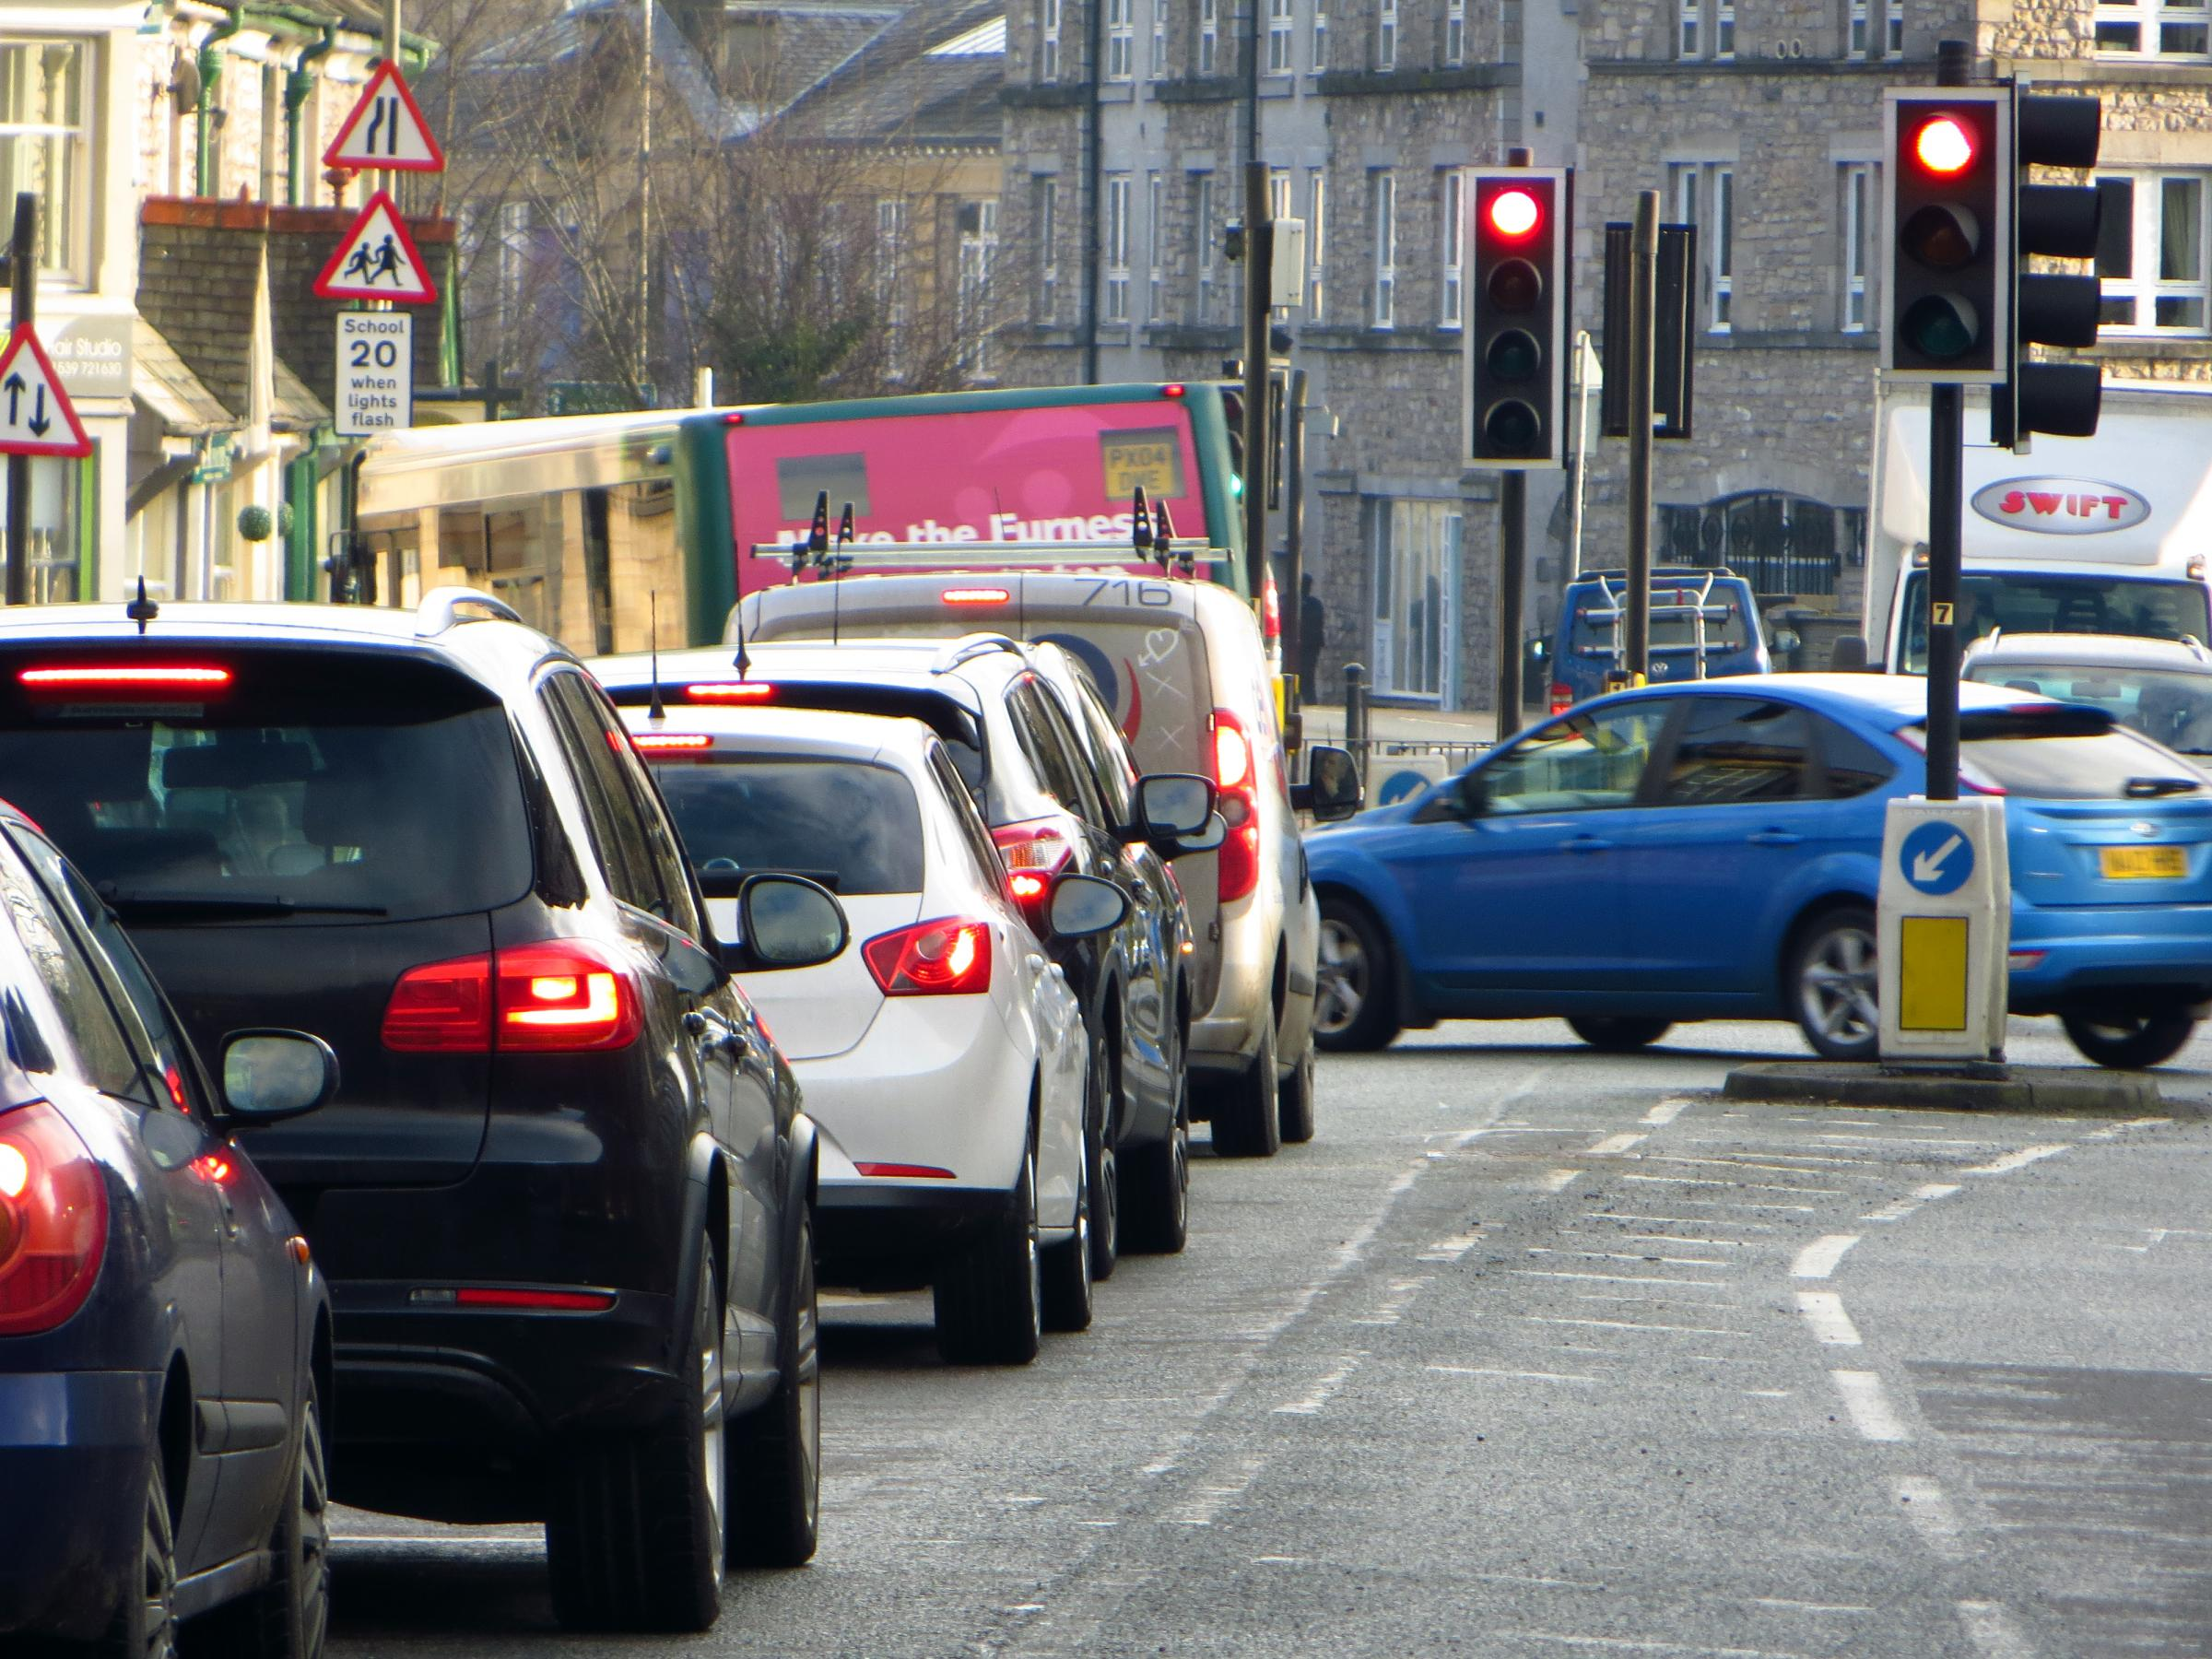 HAVE YOUR VOTE: Are there too many traffic lights in our towns?